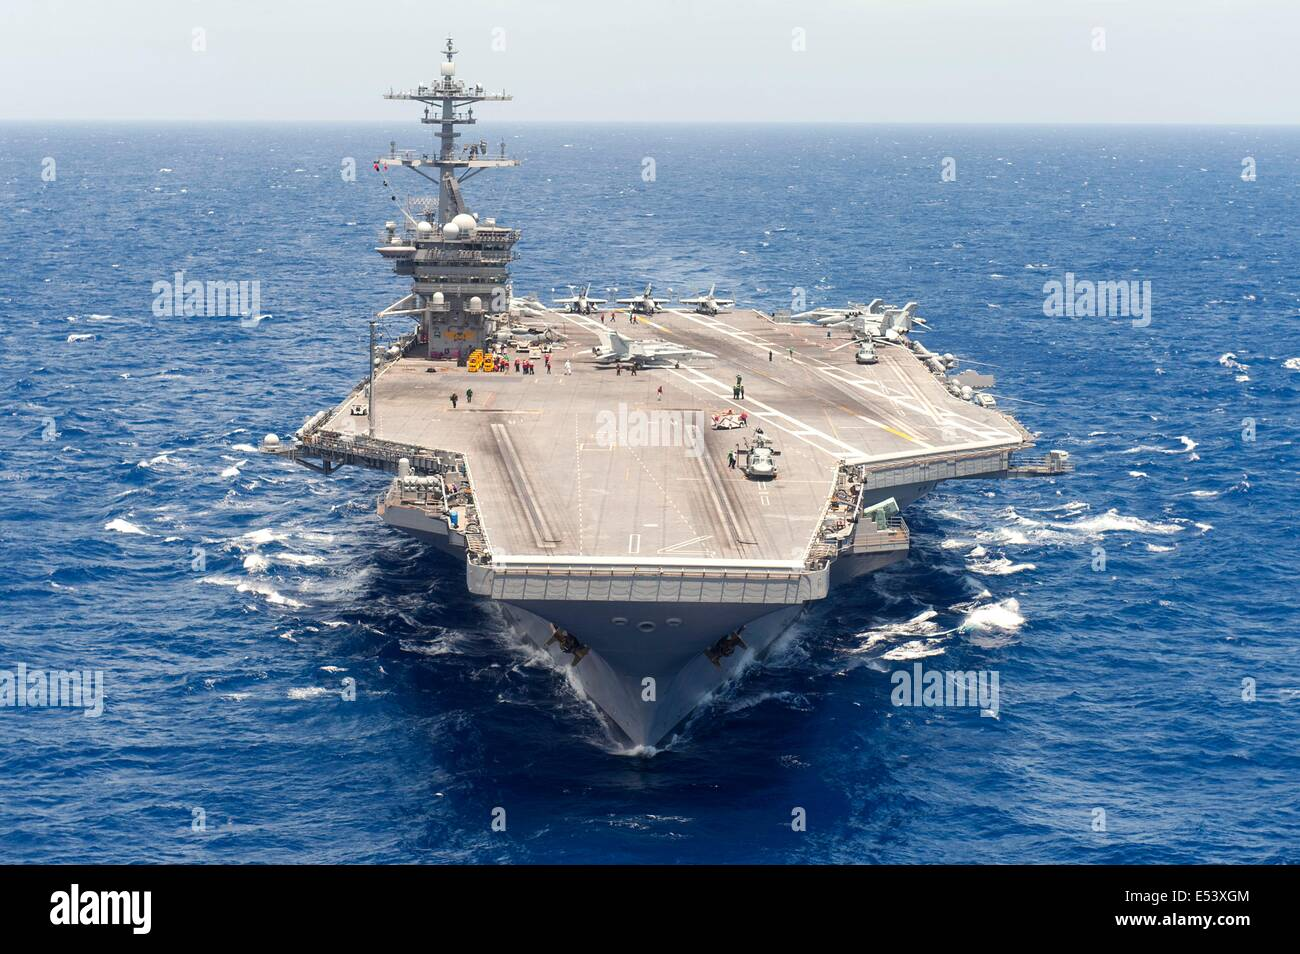 US Navy Nimitz-class aircraft carrier USS Theodore Roosevelt July 16, 2014 in the Atlantic Ocean. Stock Photo